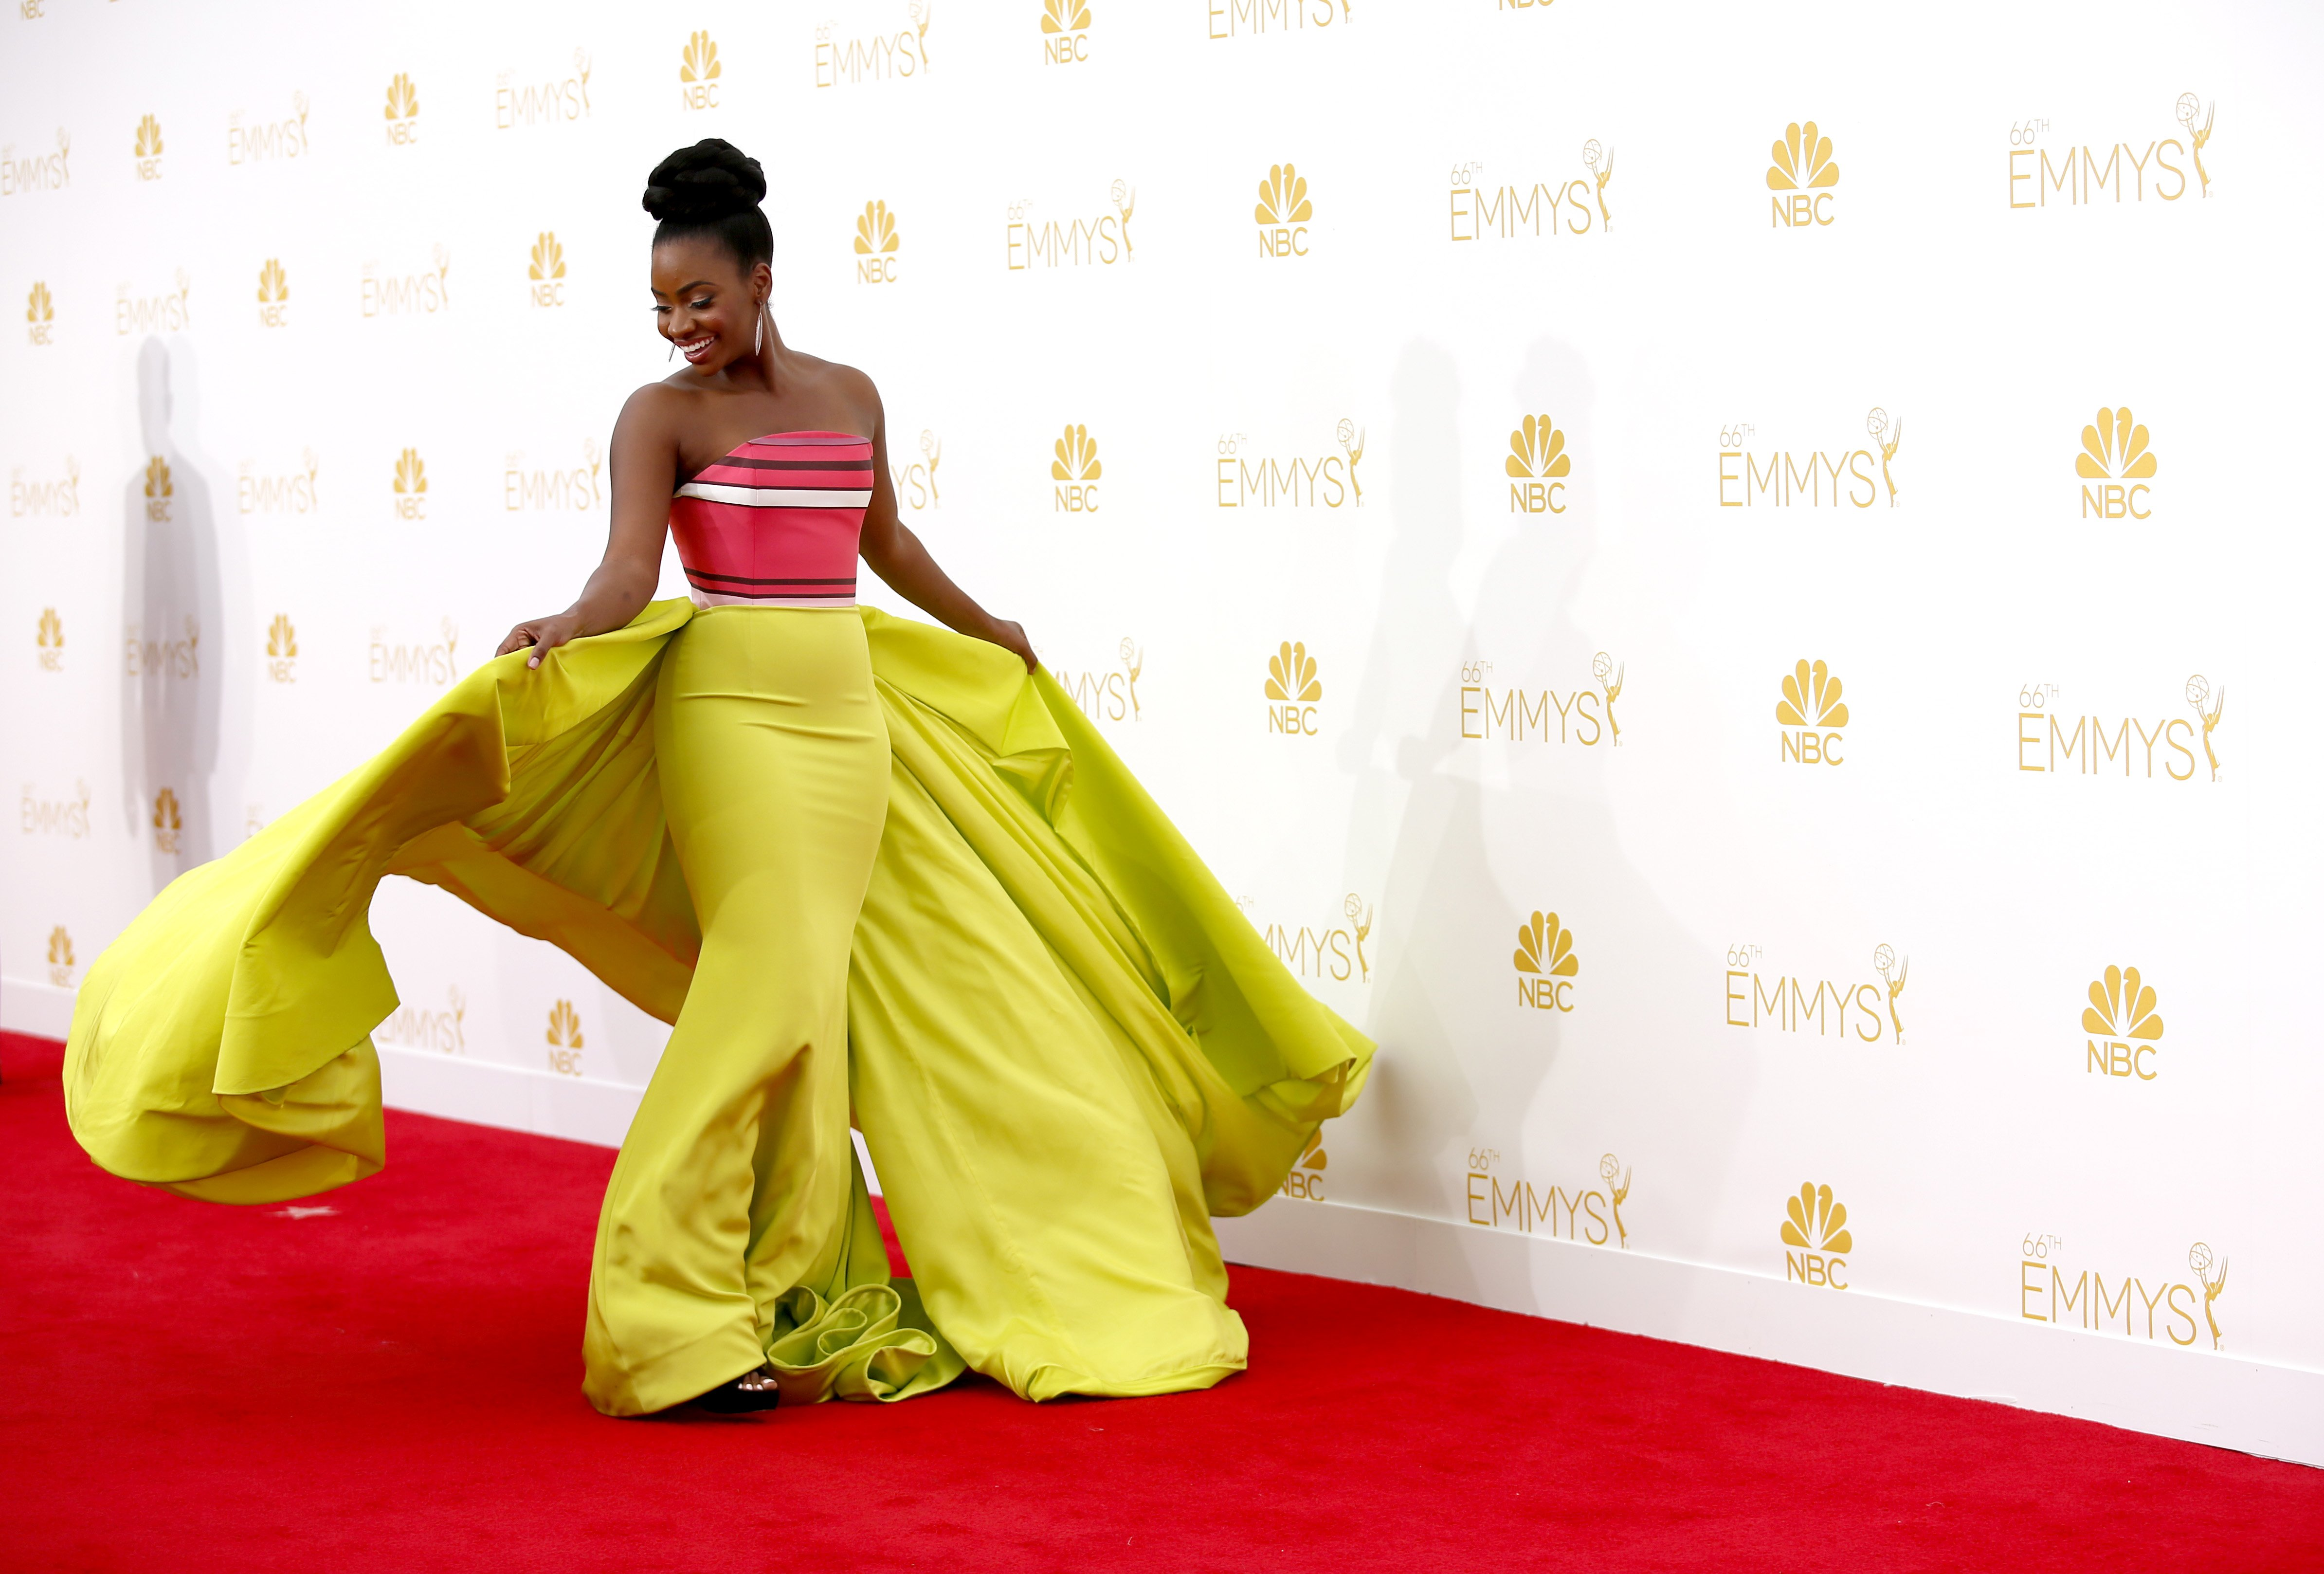 Teyonah Parris arrives at the 66th Primetime Emmy Awards at the Nokia Theatre L.A. Live on Monday, Aug. 25, 2014, in Los Angeles.